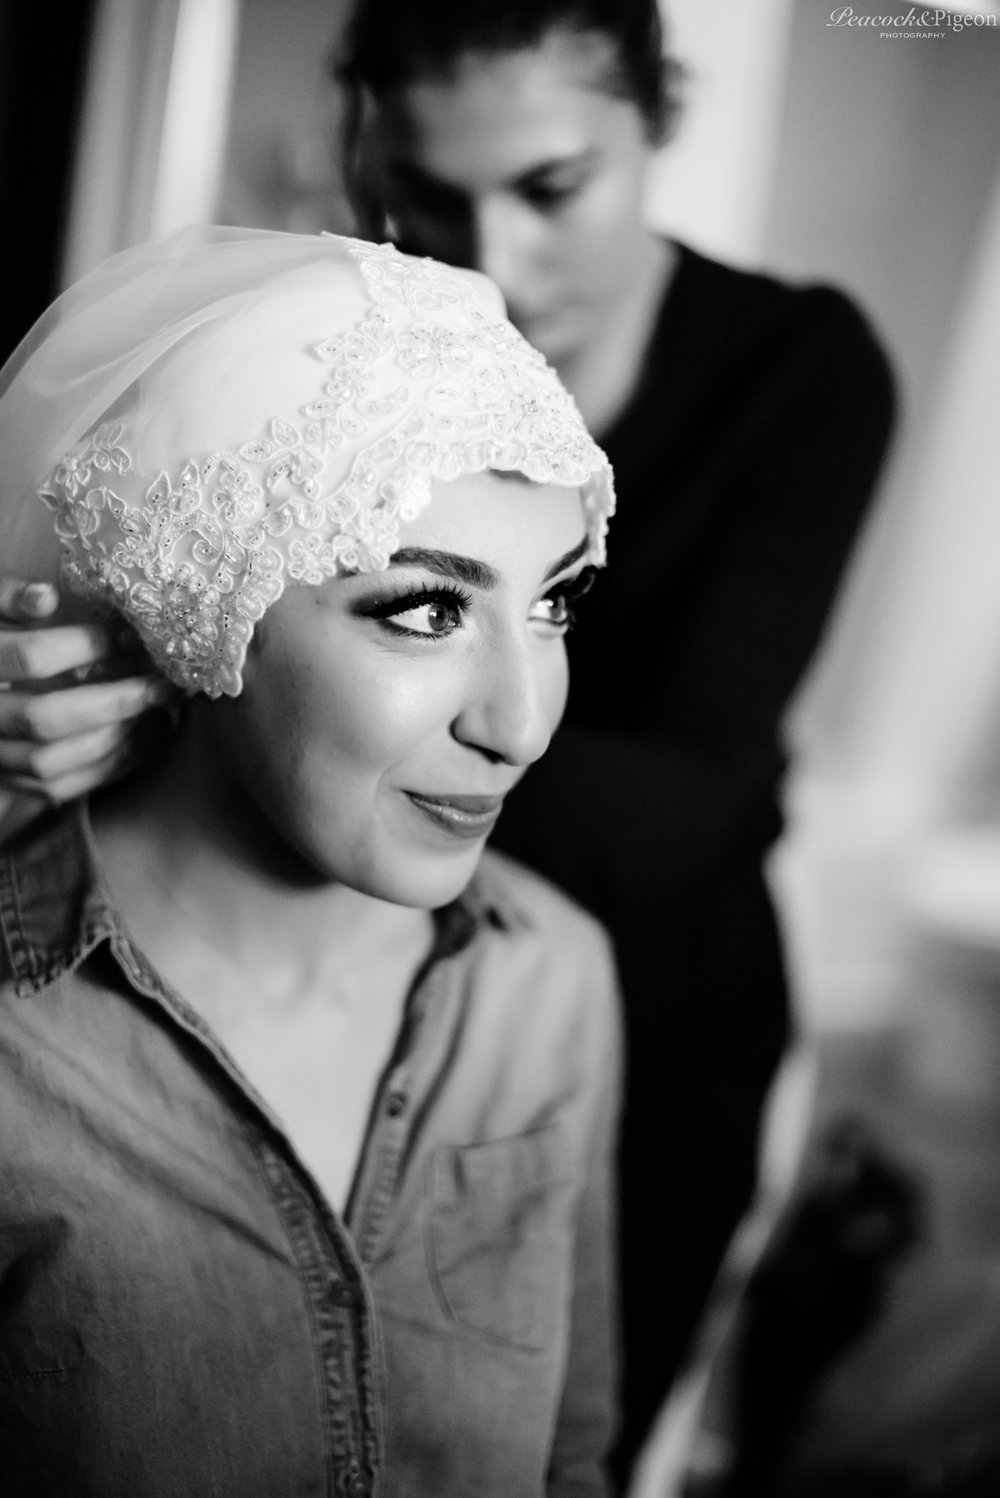 The_Wedding_of_Radwa_and_Kareem_at_Somerset_Palace_Part_One_The_Hotel_Black_and_White-Watermarked-120.jpg